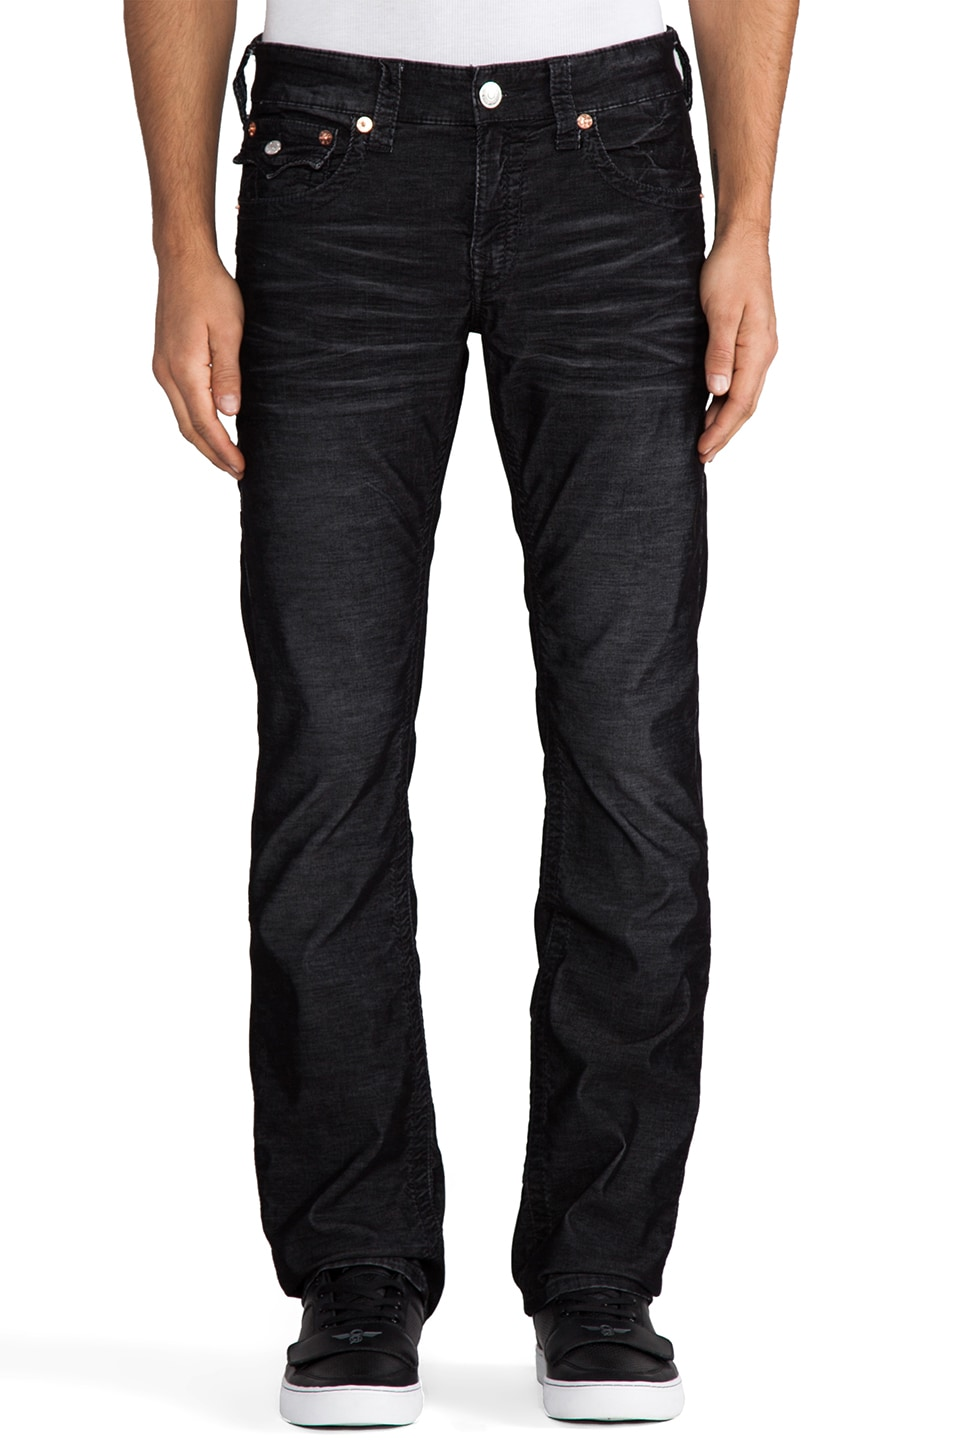 True Religion Ricky Cord in Black